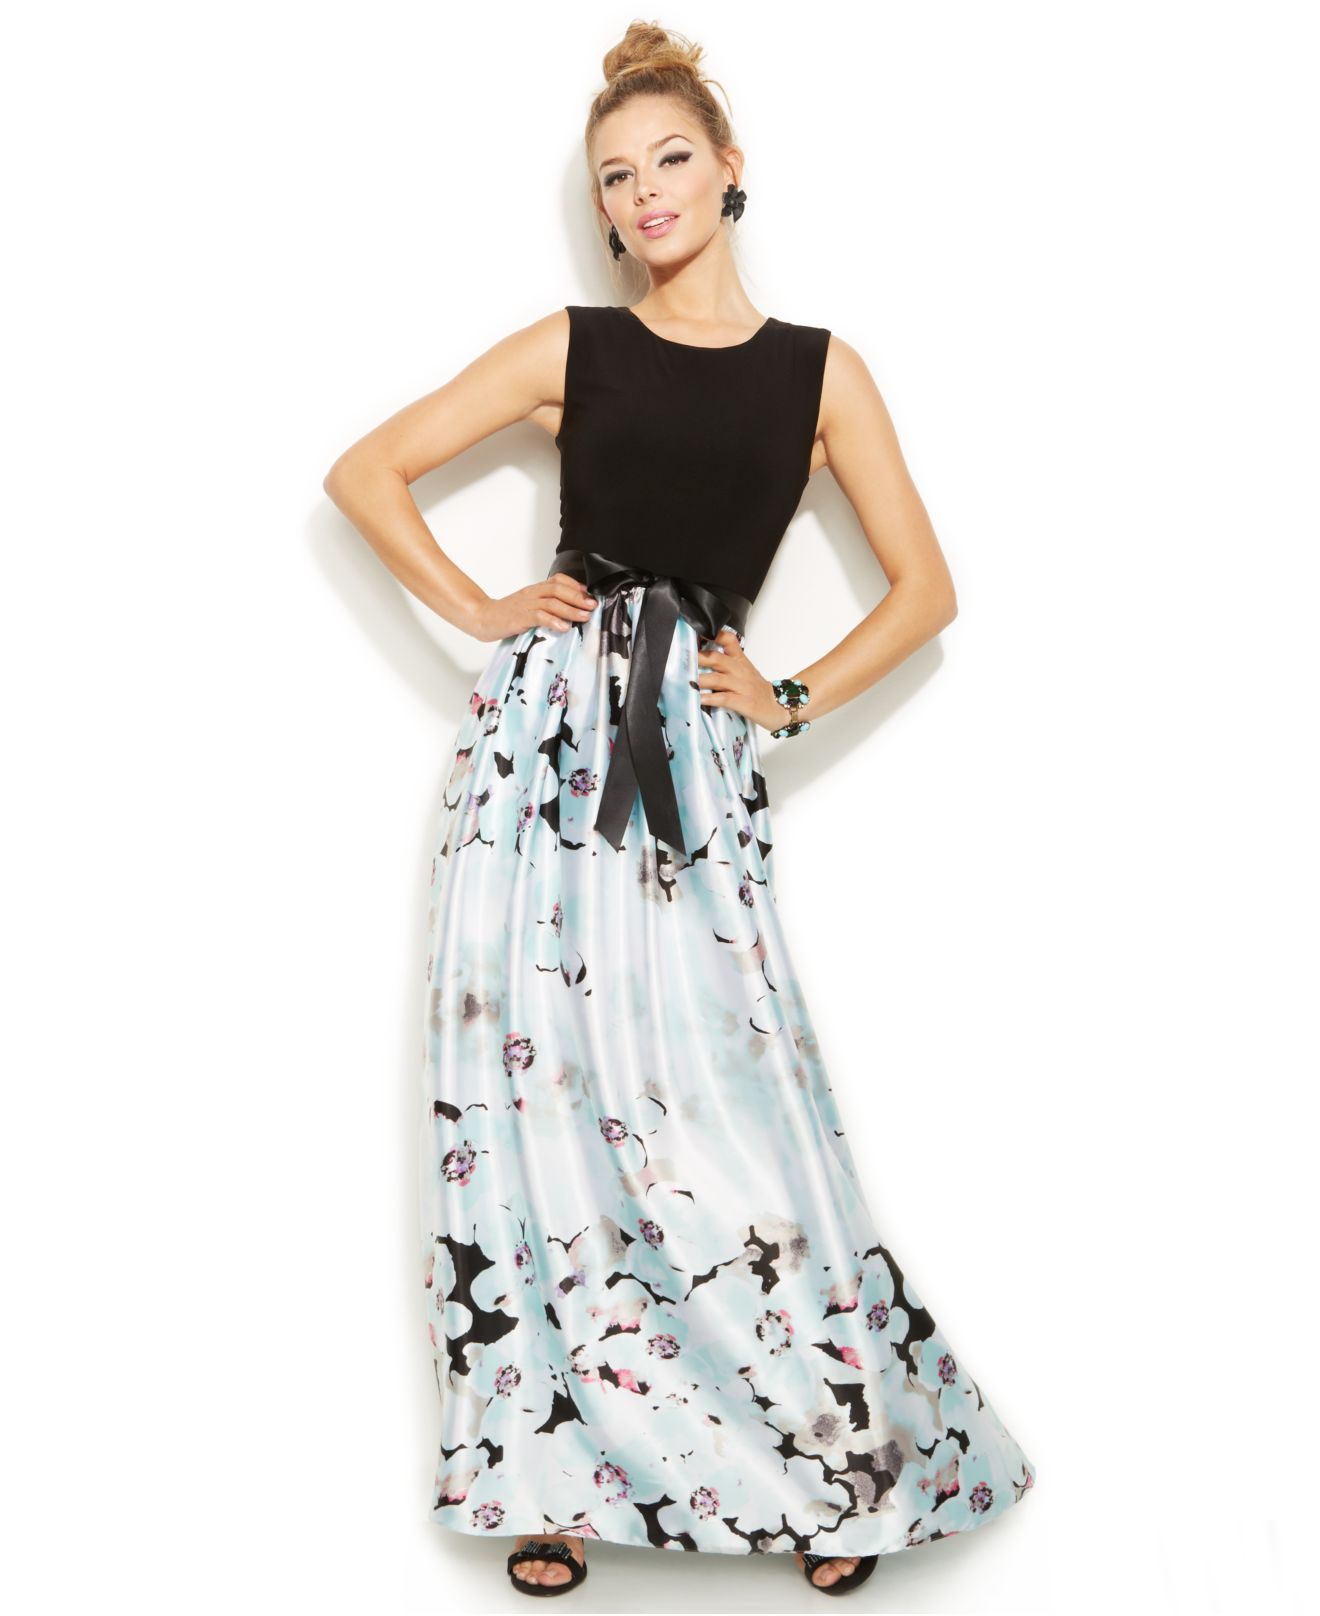 macys plus size prom dresses photo - 1